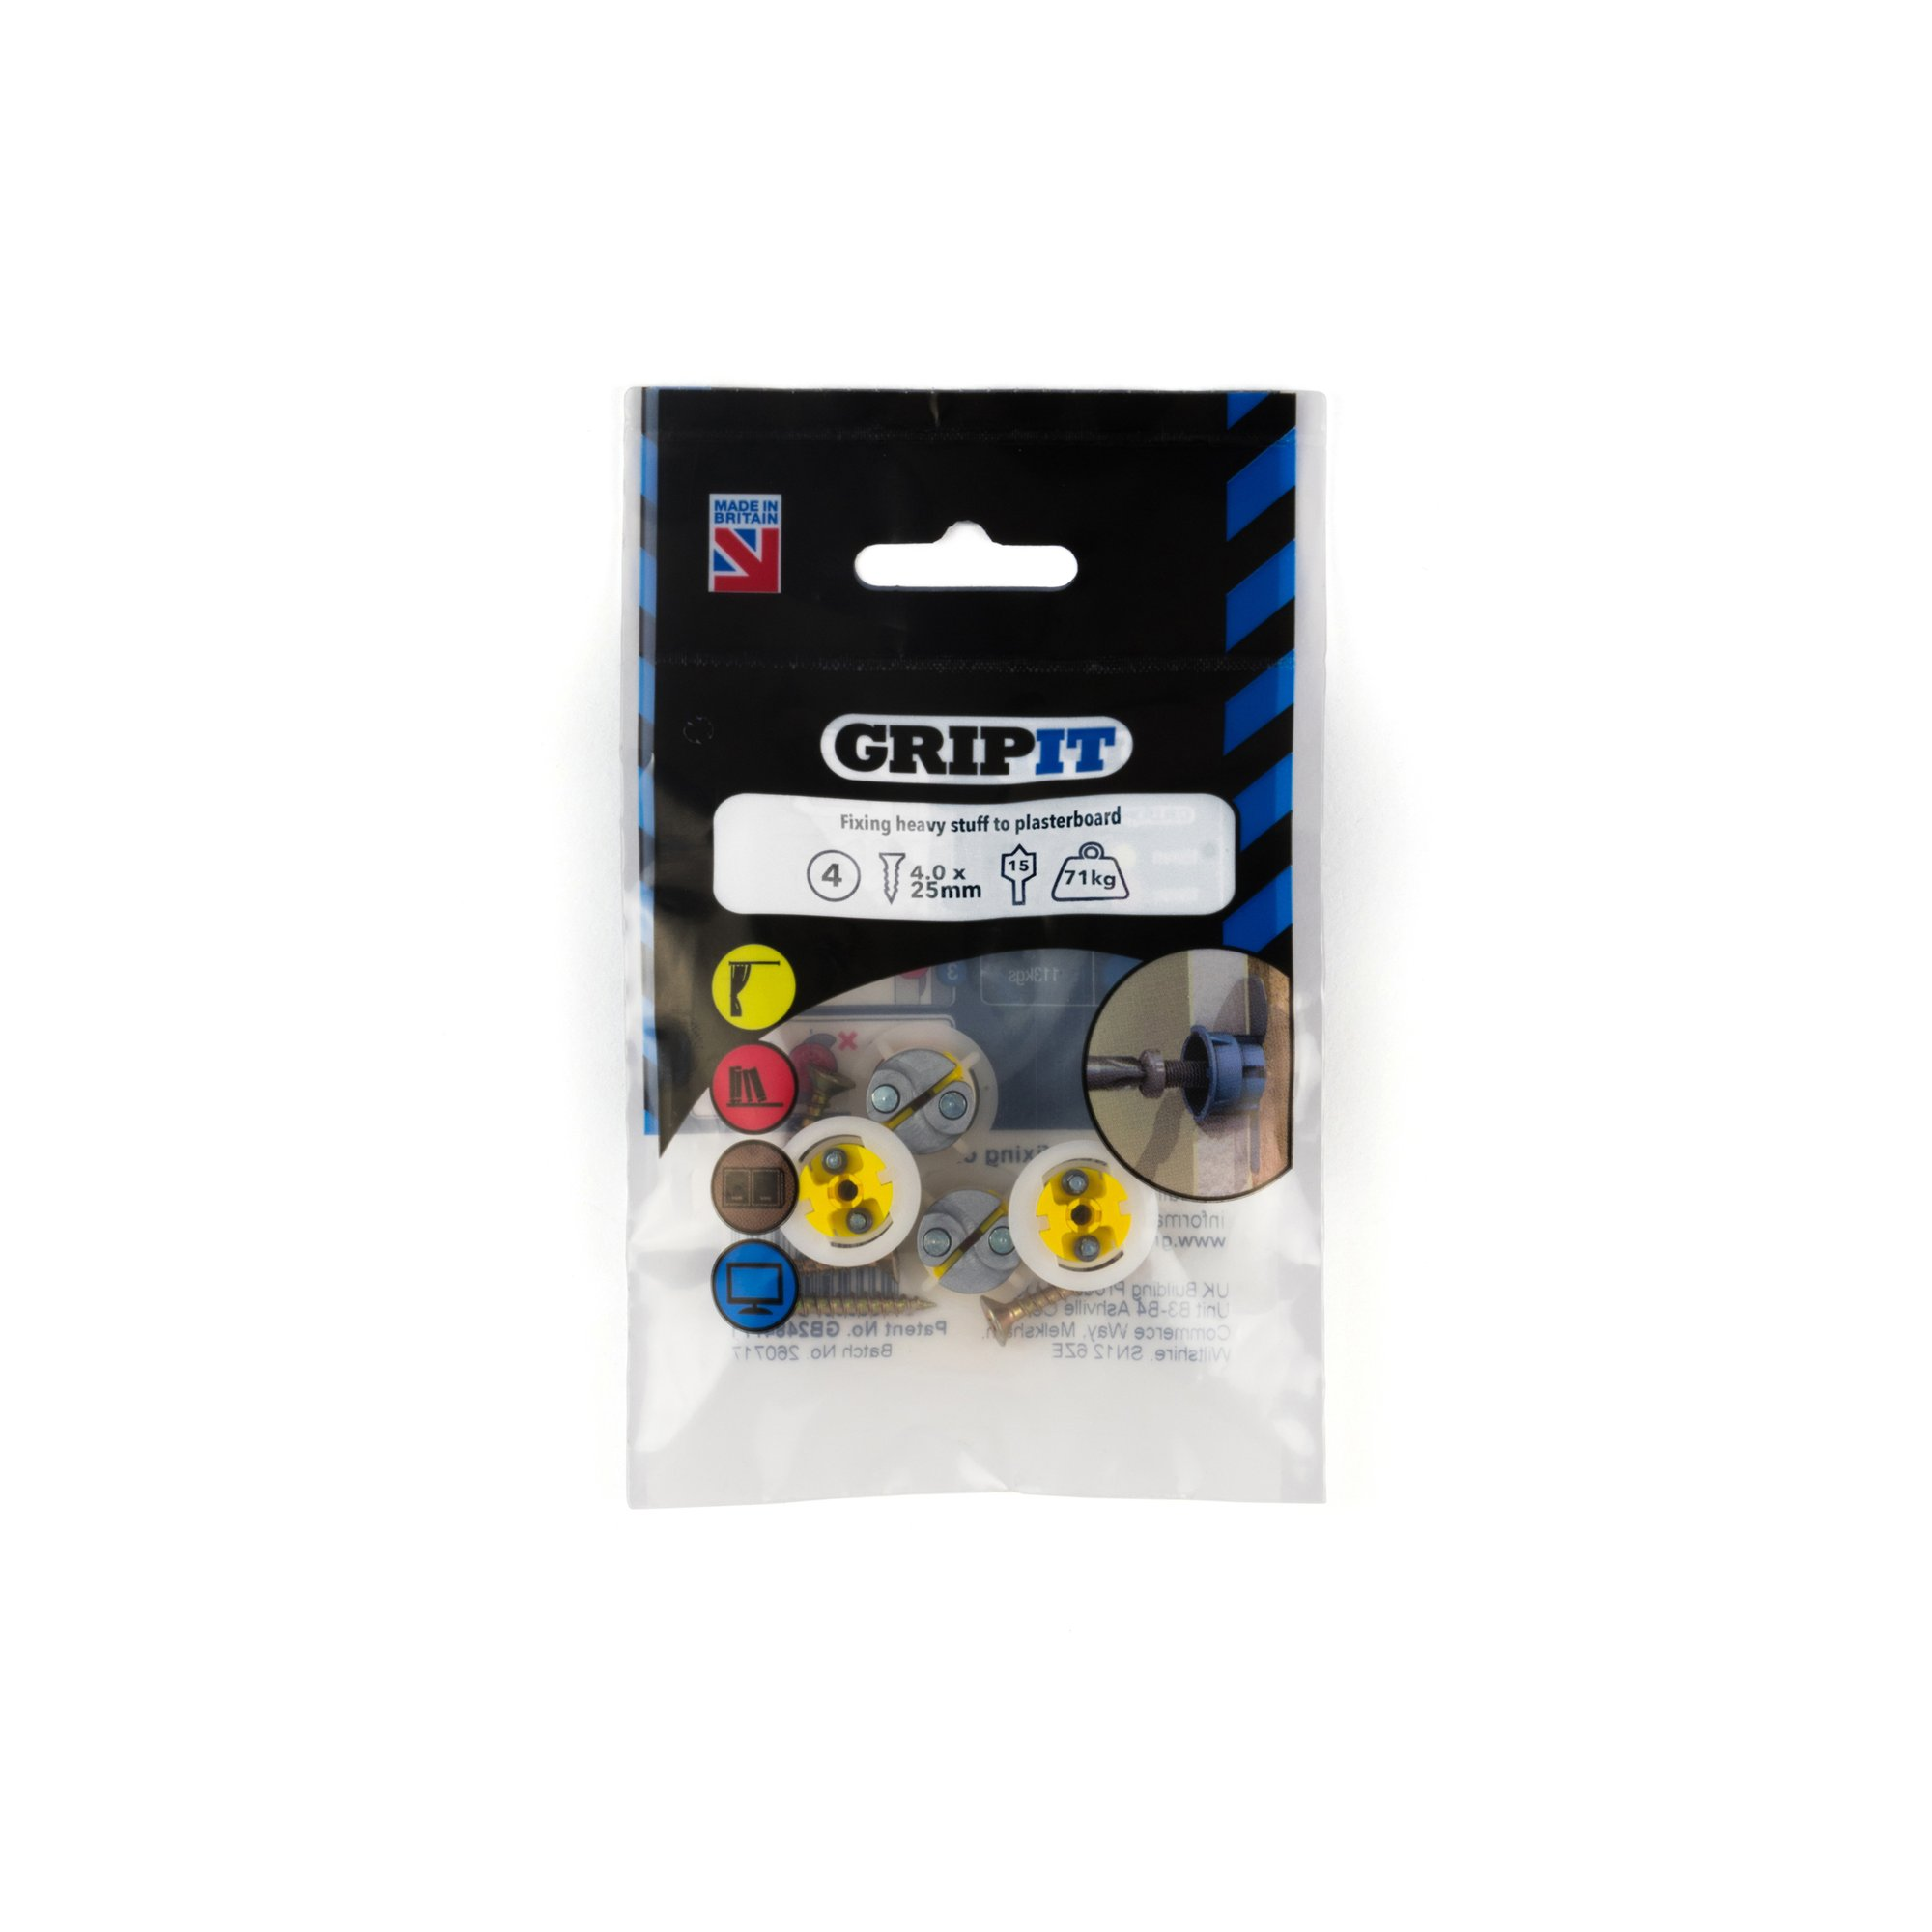 GRIPIT FIXINGS - YELLOW 15MM FIXING PACK - 152-254 - PK4